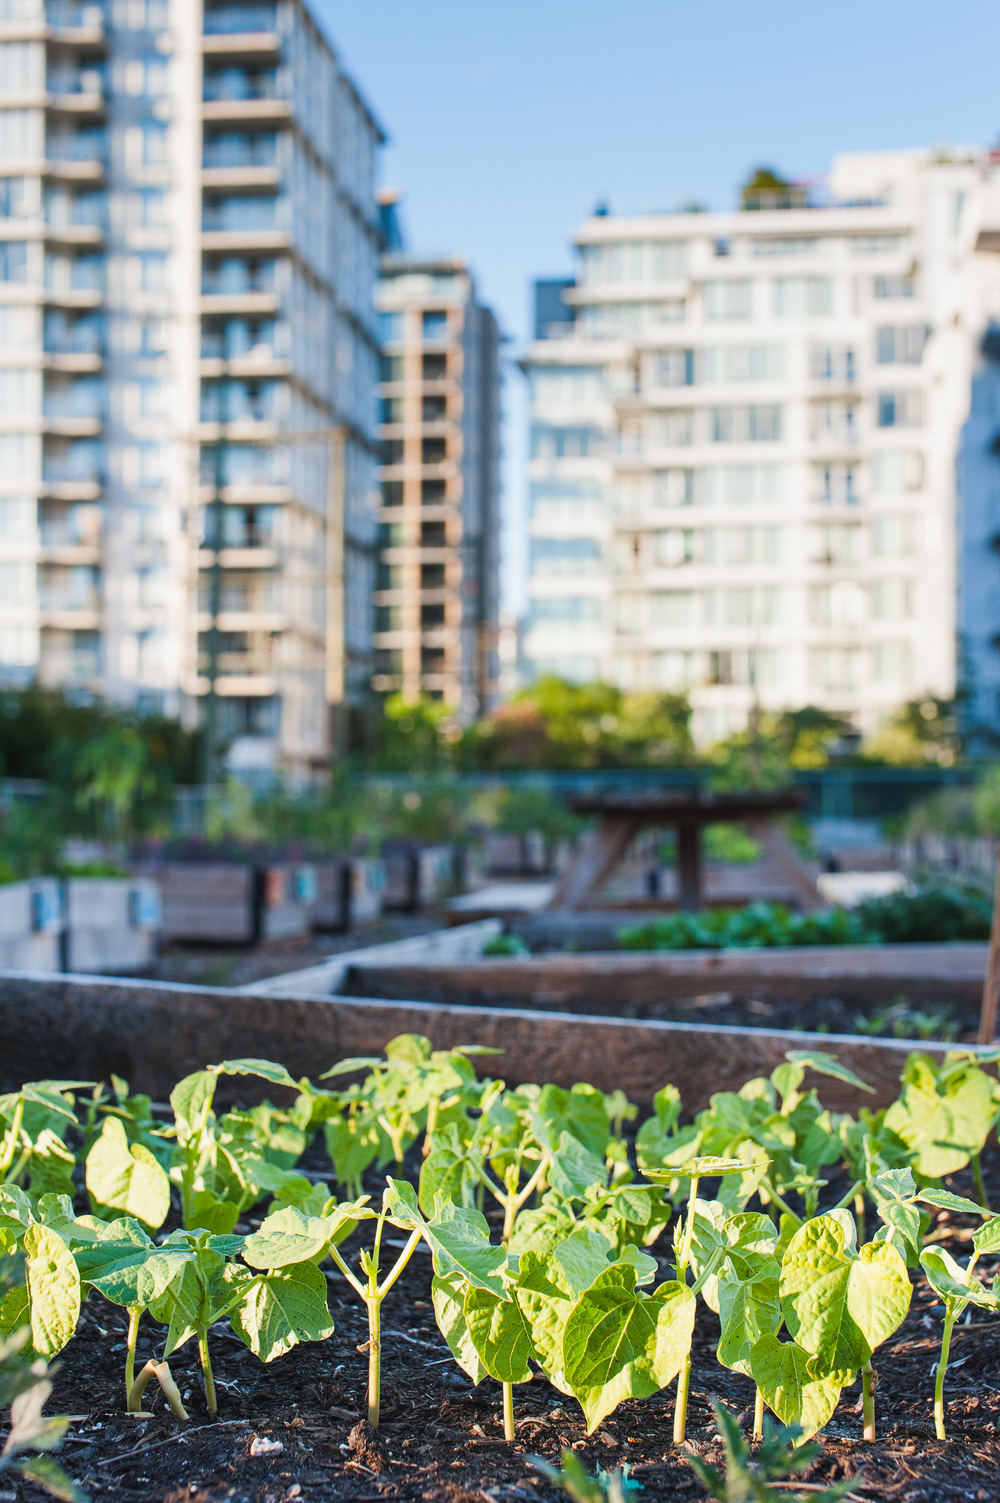 Southeast_False_Creek_Community_Garden_Raised-Beds_12-06.2015.jpg